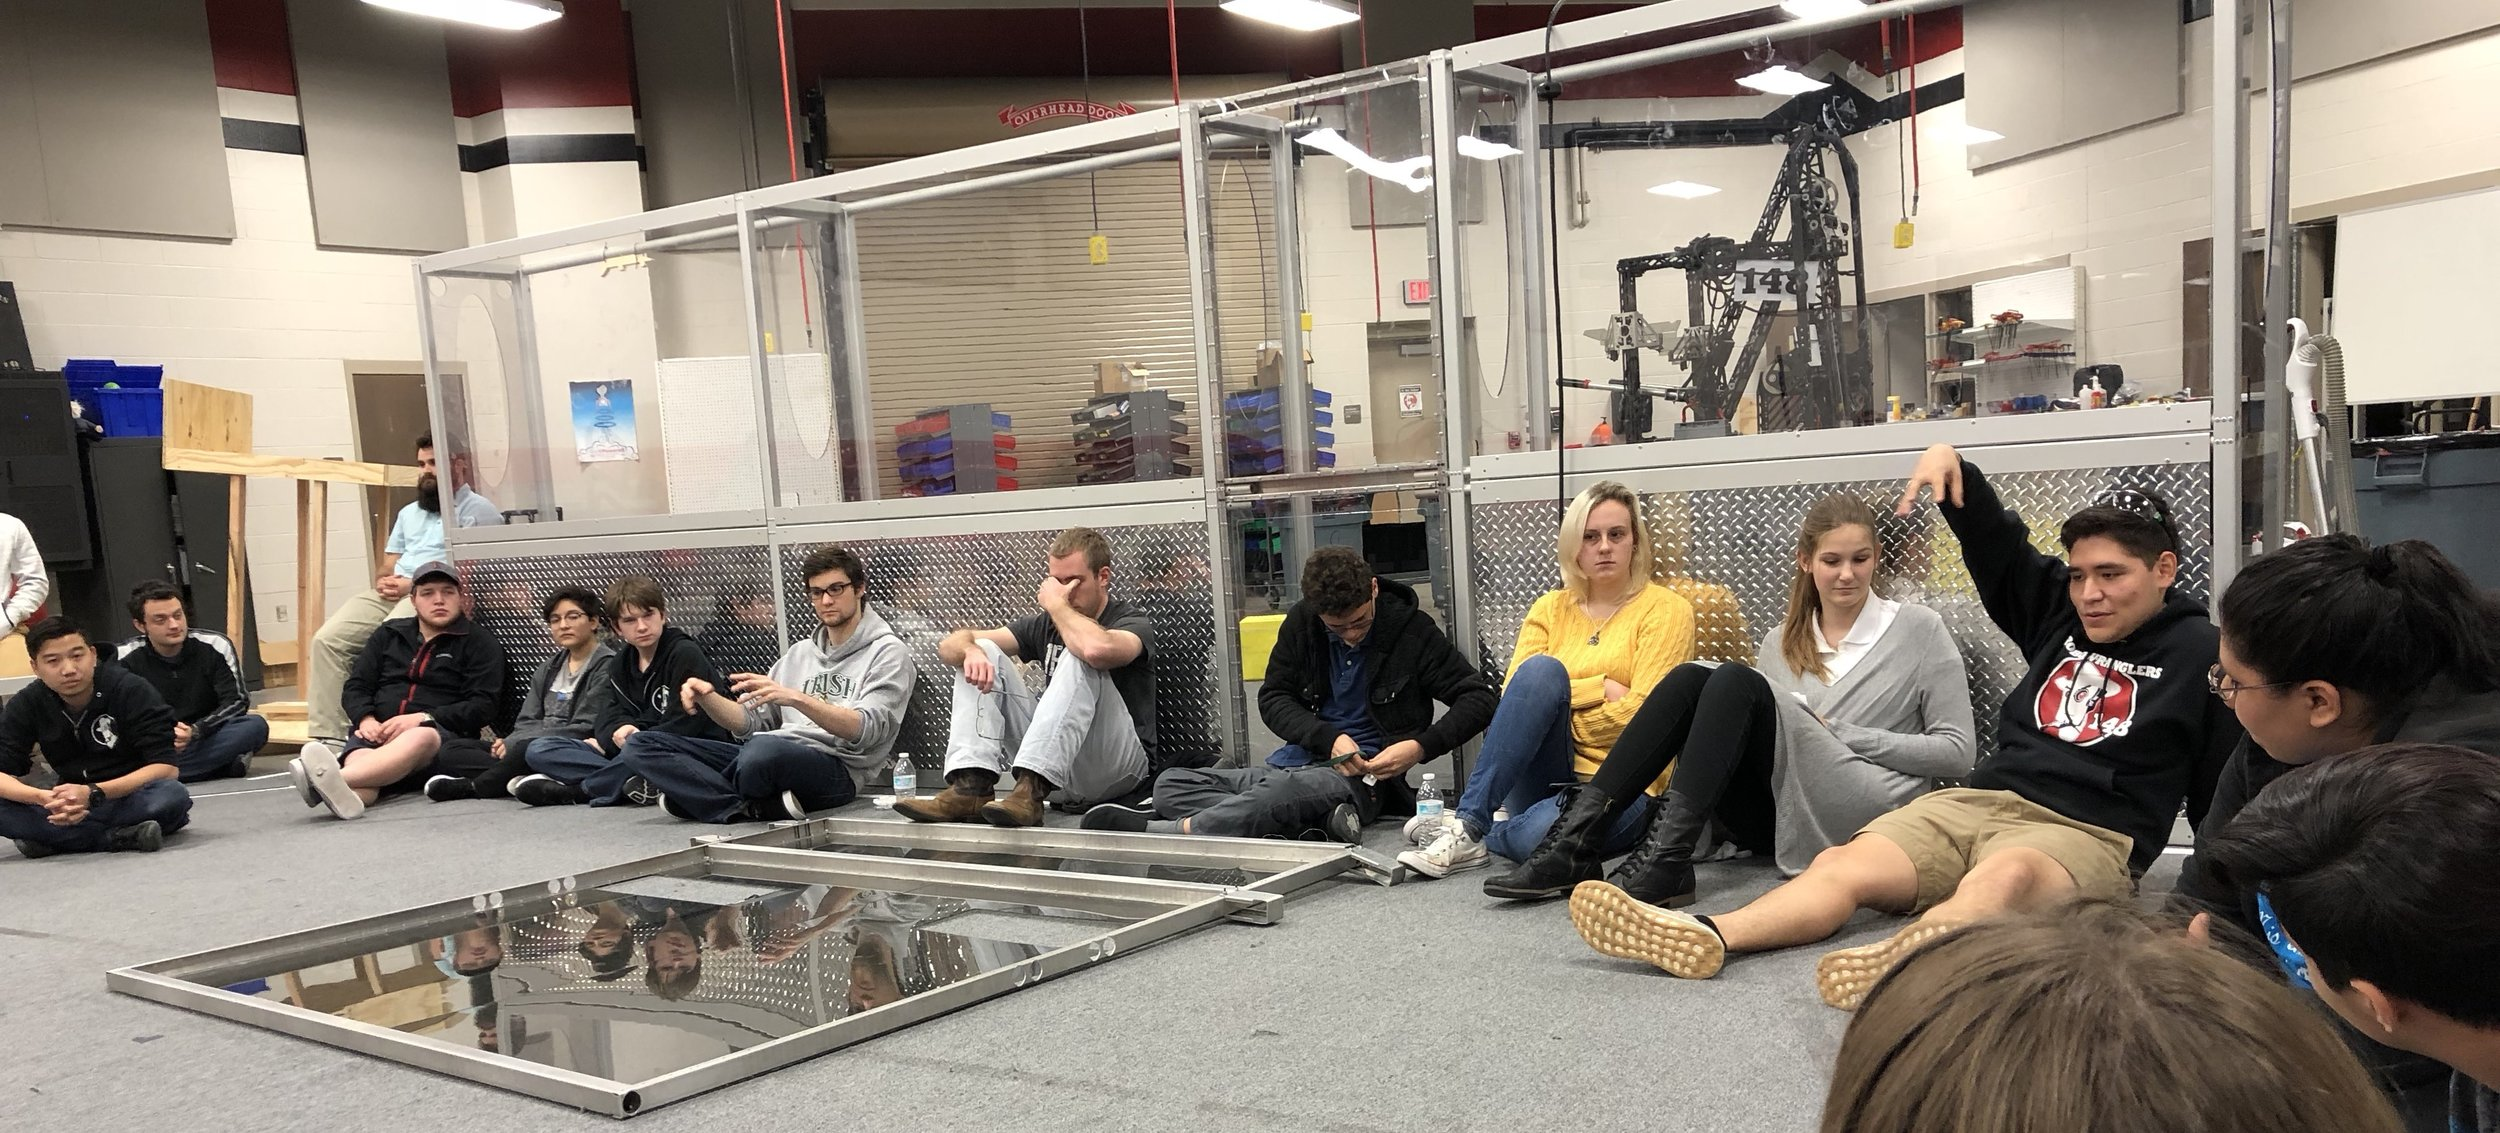 """We should build  TWO ROBOTS  connected by tether and each of them helps their own fridge. Mic Drop."" - Carlos ""I don't know what to do with my hands right now."" - BJC ""I don't know why I joined this team"" - Alex <face-palm>"